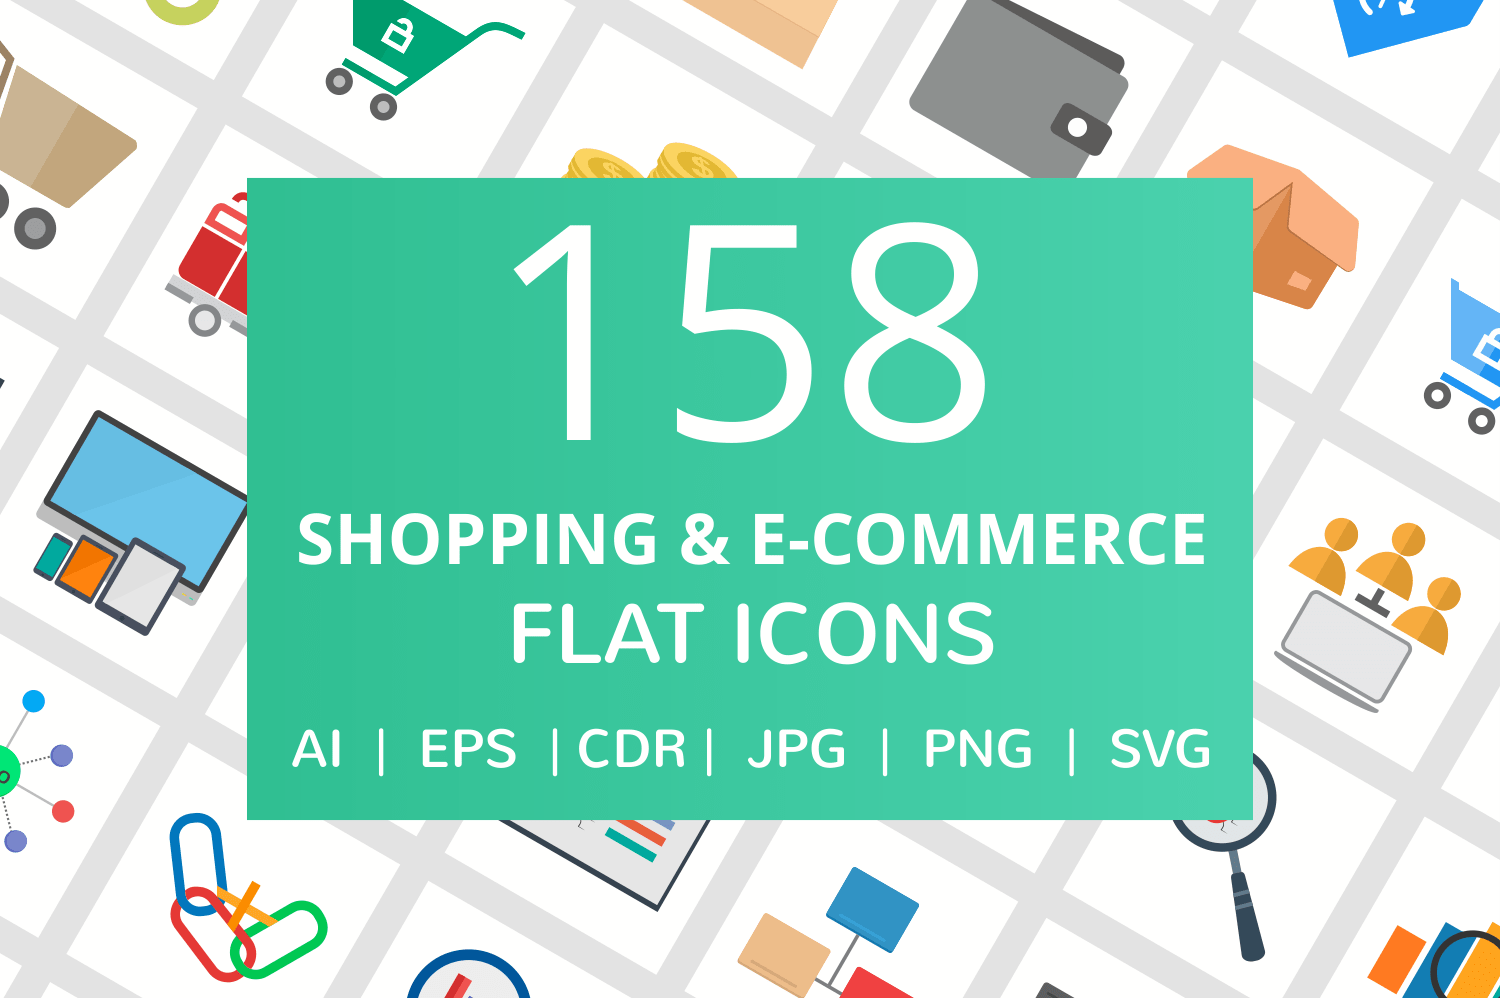 158 Shopping & E-Commerce Flat Icons example image 1